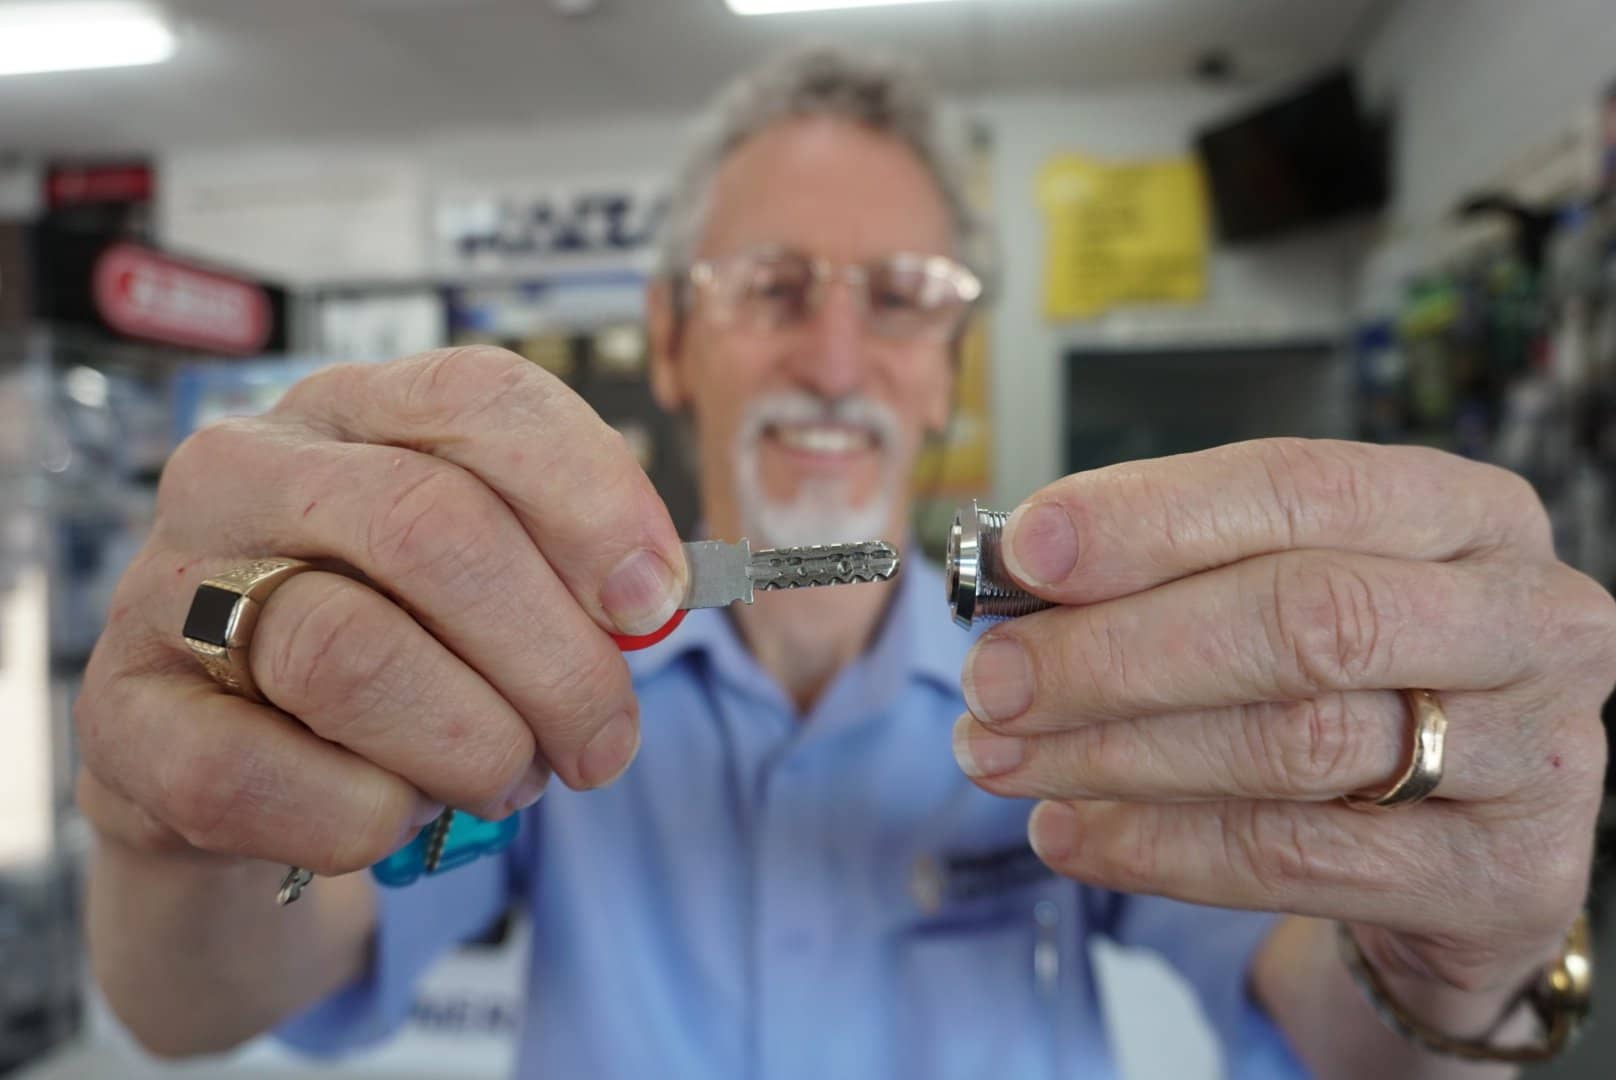 Man holding a key and lock cylinder in focus